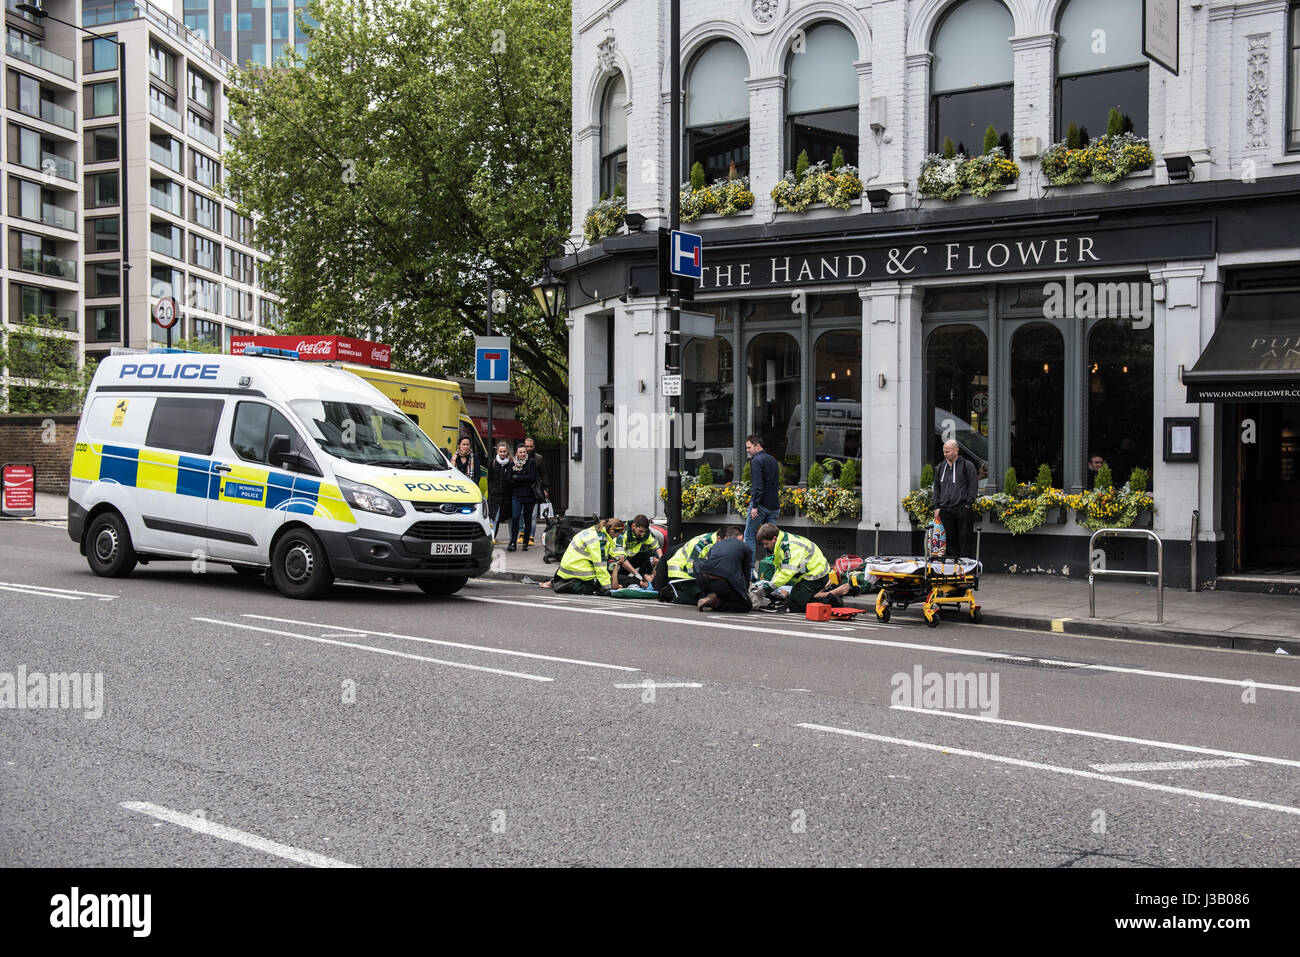 London, UK. 4th May 2017. Two people were injured when a motorbike crashed onto the pavement. Several ambulance - Stock Image